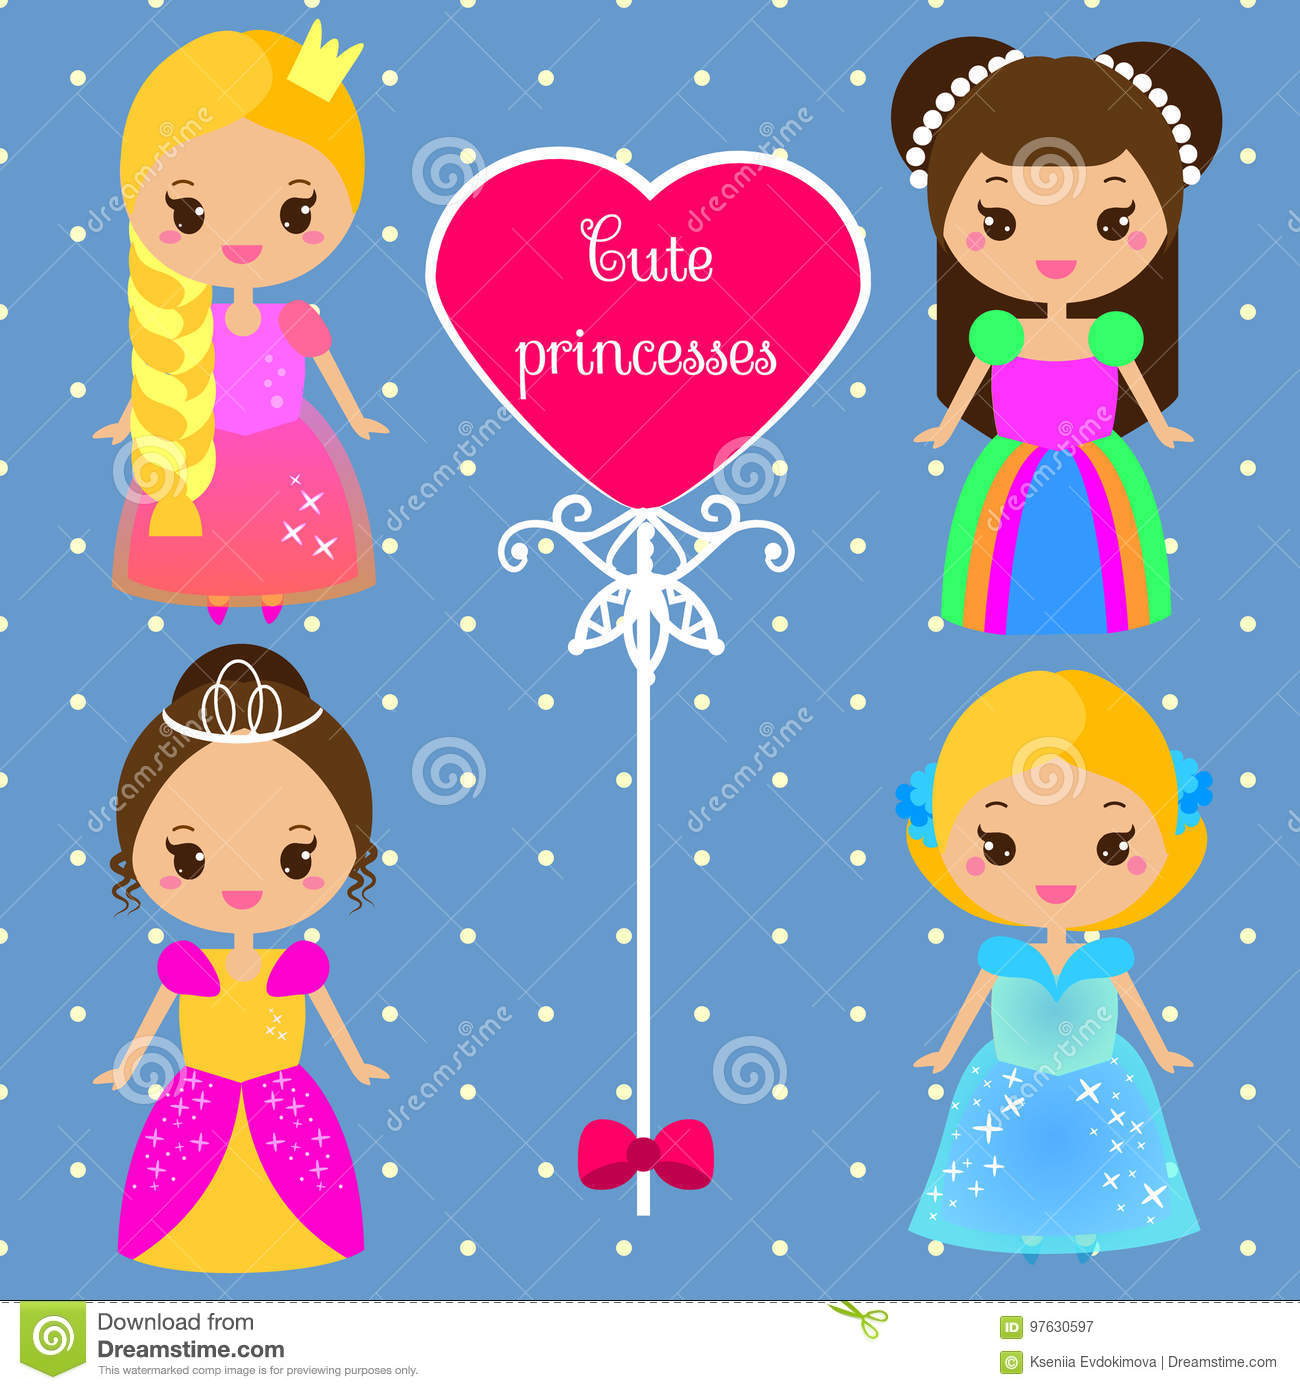 Princesas Bonitos Em Vestidos Coloridos No Estilo Do Kawaii